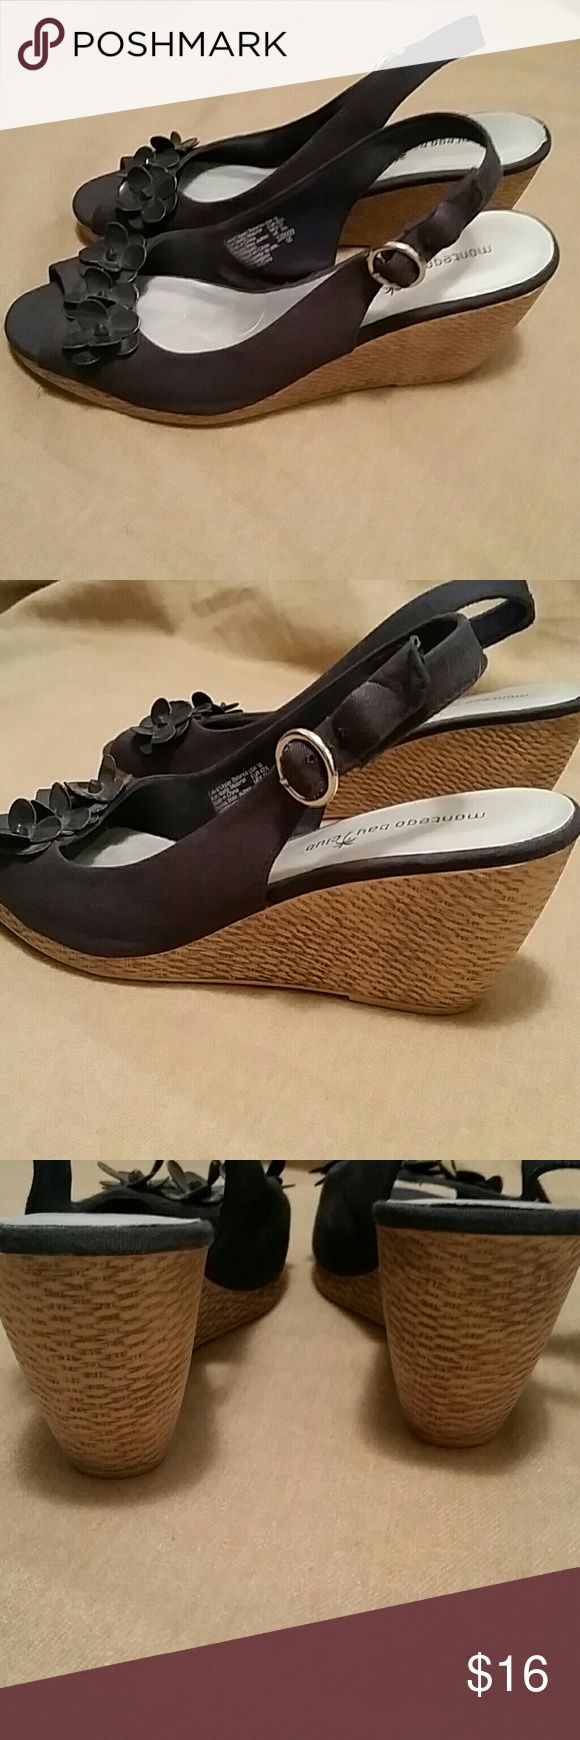 Navy wedge sandal size 10 Body of shoe is fabric and little flowers on front are faux patent leather.  Wedge heel has natural woven look. Montego Bay Club Shoes